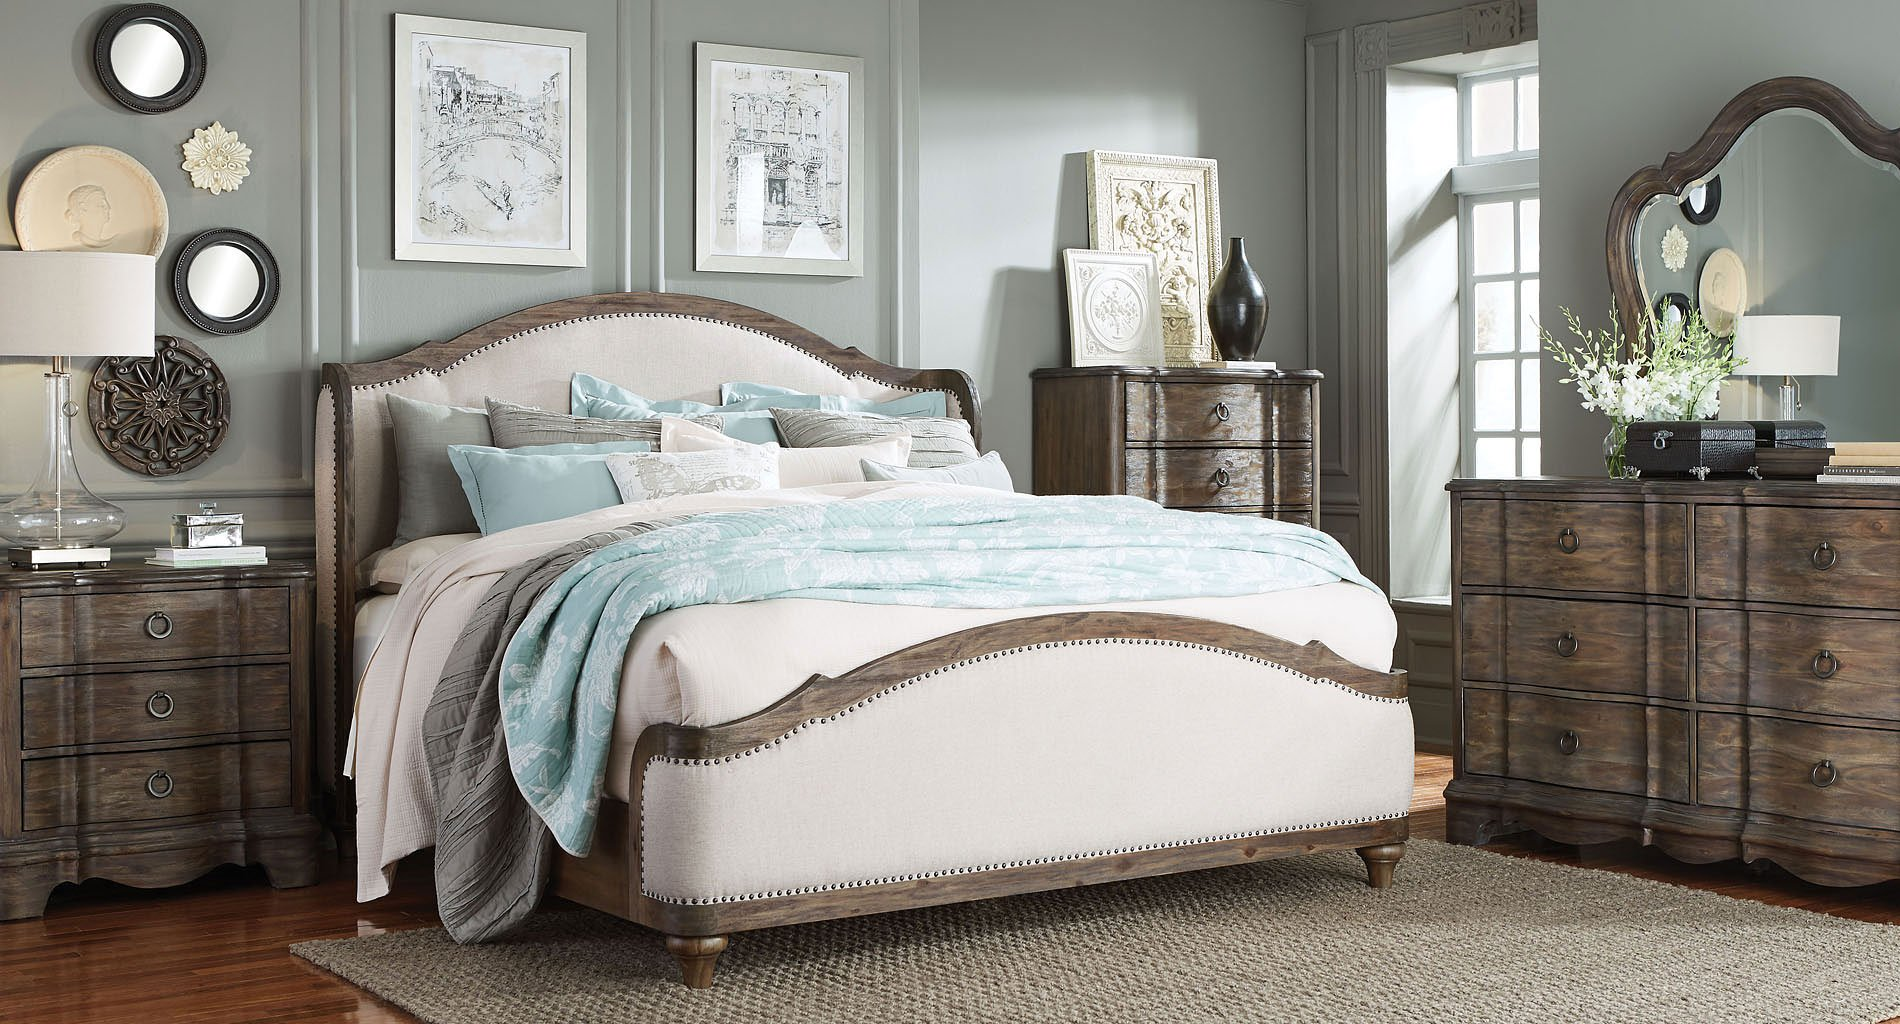 Cute Upholstered Bedroom Set Design